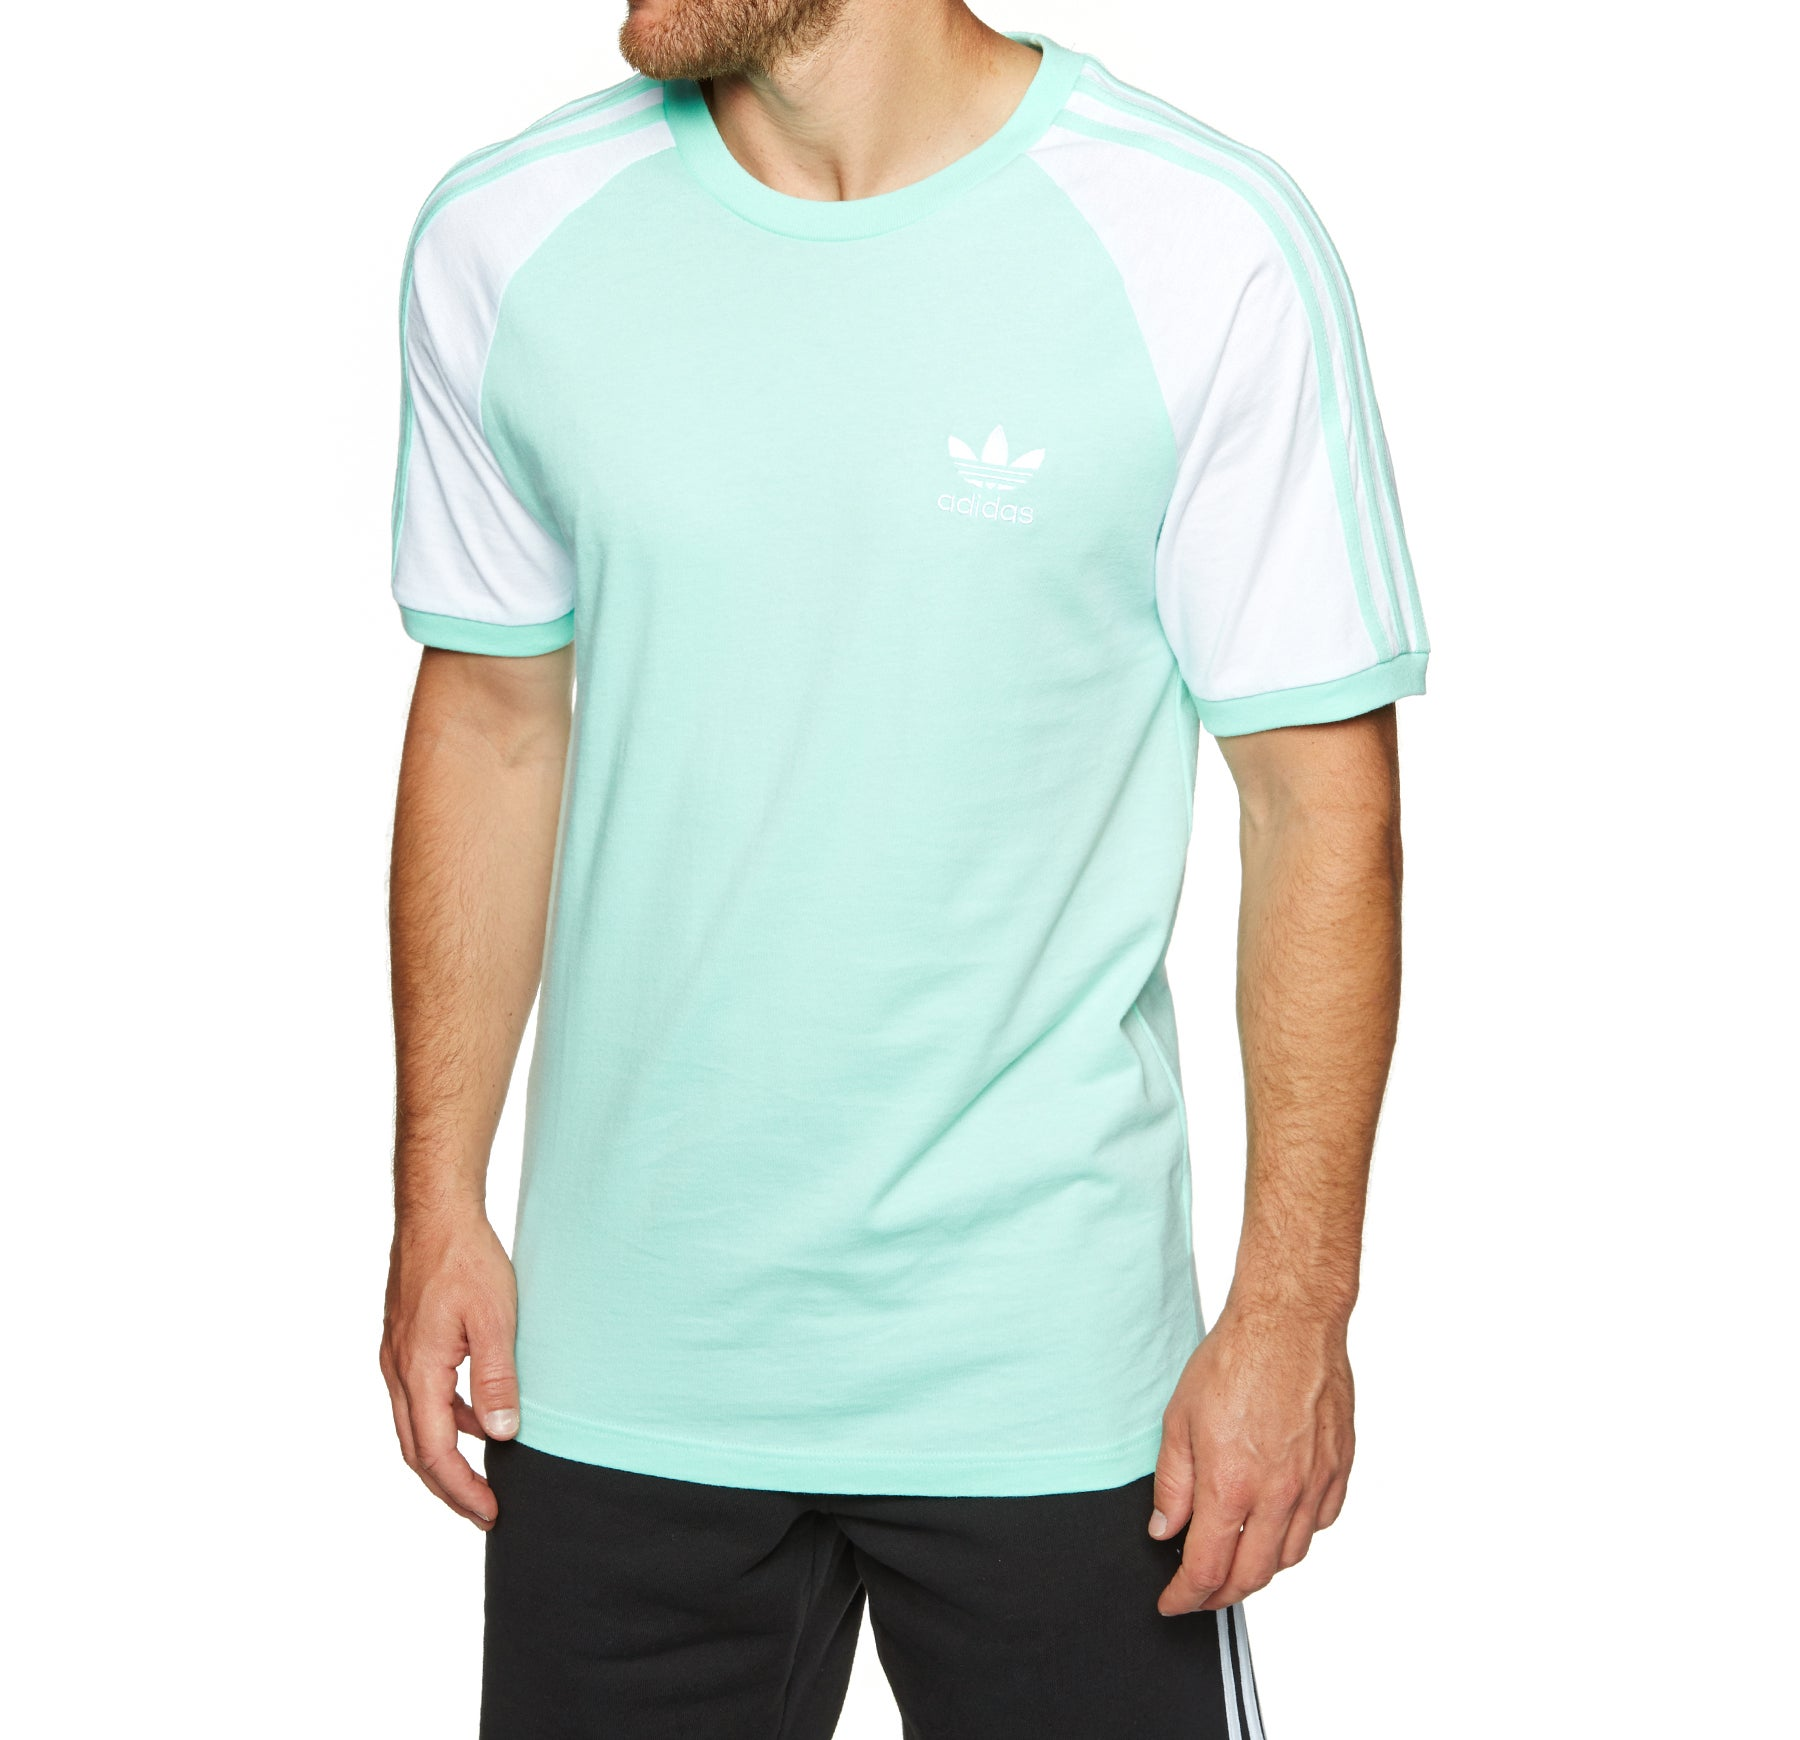 Adidas Originals 3 Stripes Short Sleeve T-Shirt - Clear Mint